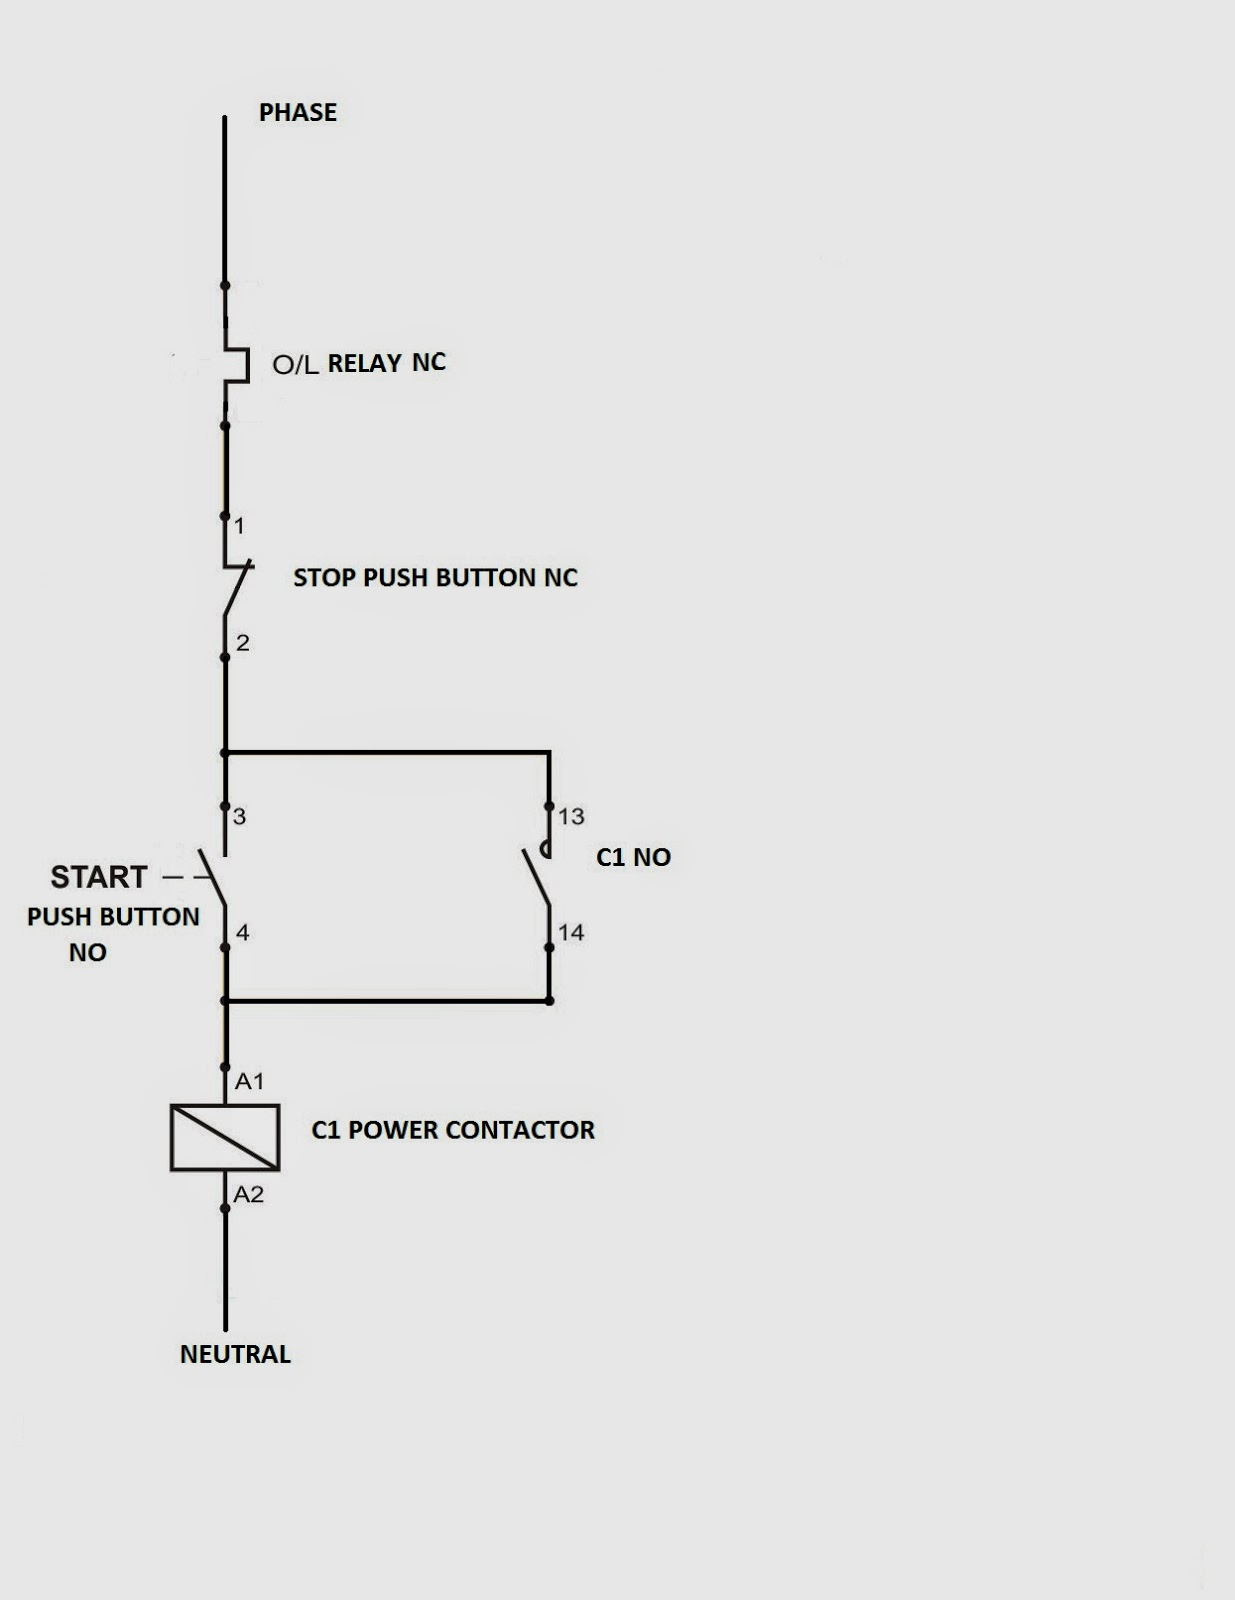 medium resolution of electrical standards direct online dol starterdirect online starter control circuit